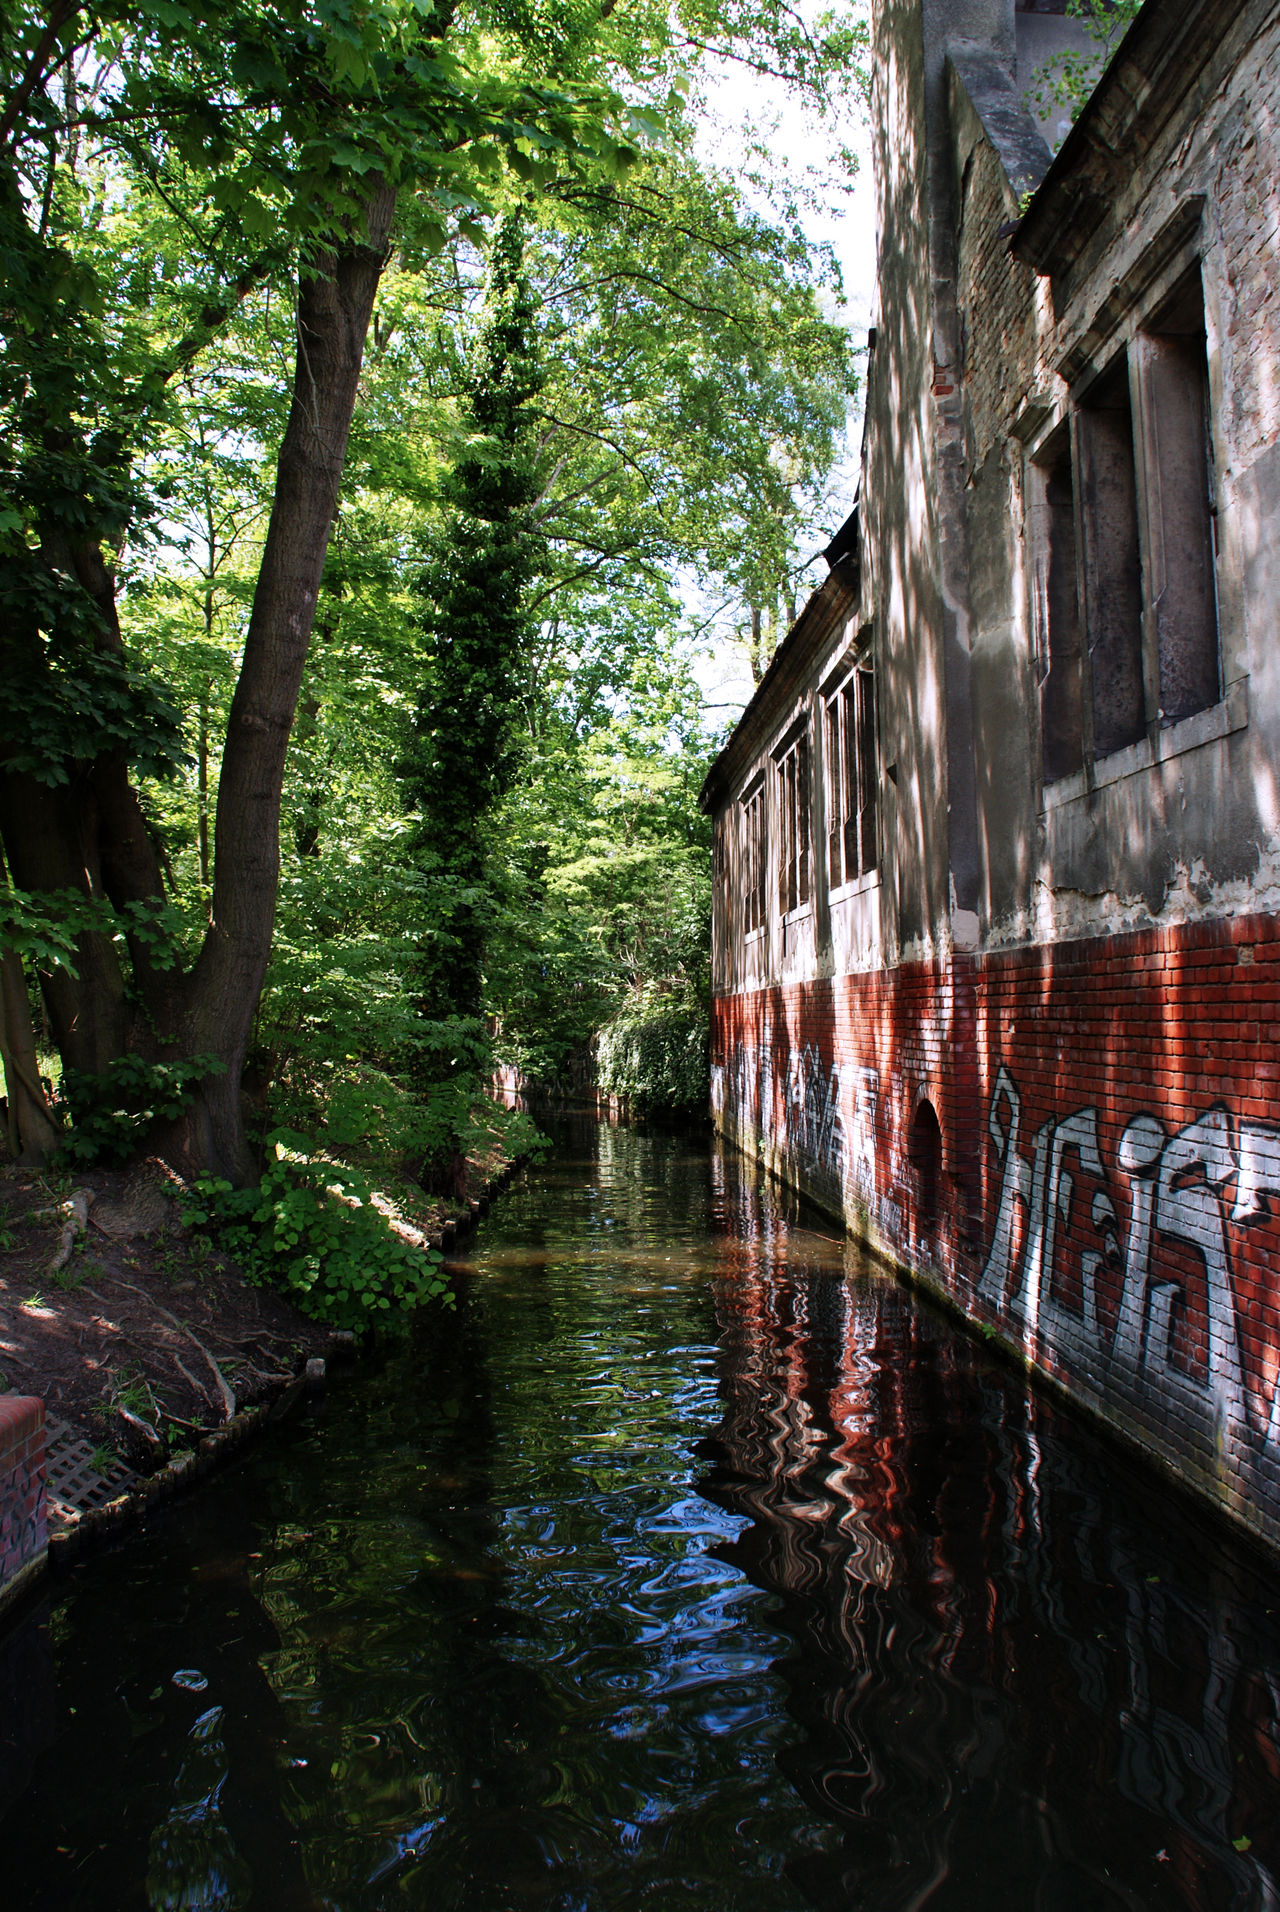 Architecture Beauty In Nature Building Exterior Built Structure Calm Water Calmness Day Graffiti Graffiti Art Growth Nature No People Outdoors Reflection Street Art Tranquility Tree Water Waterfront